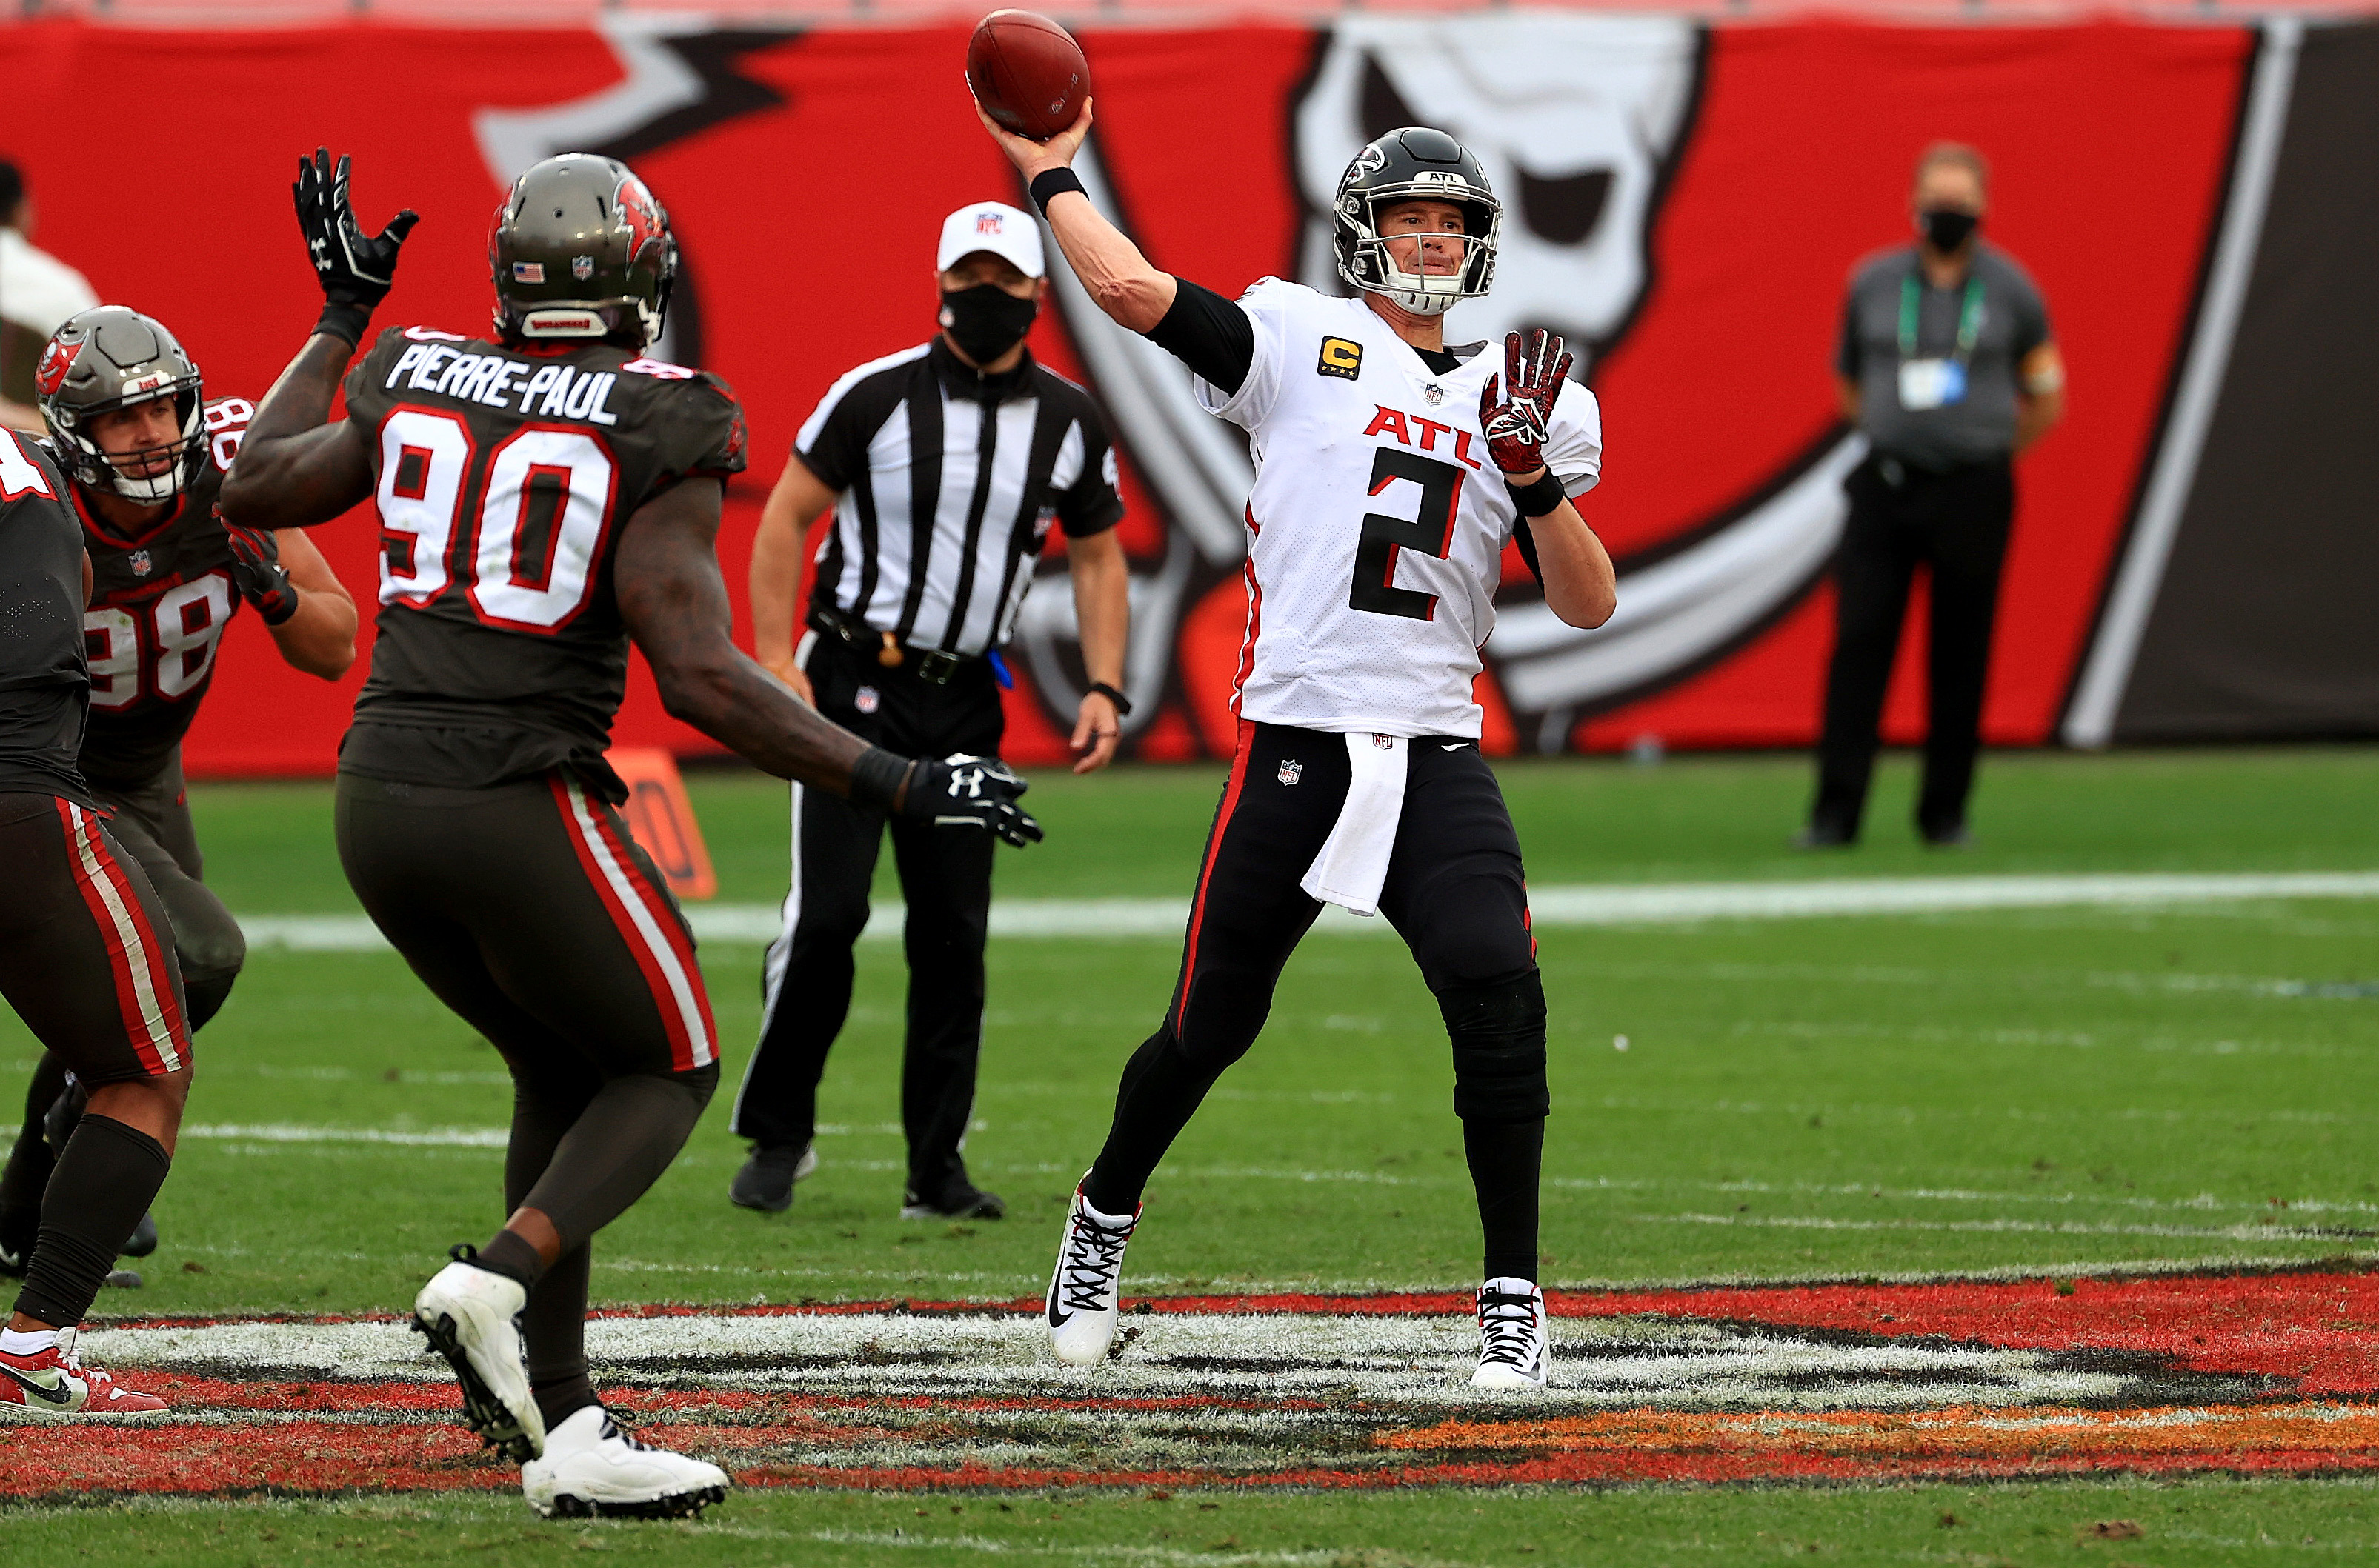 Matt Ryan #2 of the Atlanta Falcons passes during a game against the Tampa Bay Buccaneers at Raymond James Stadium on January 03, 2021 in Tampa, Florida.